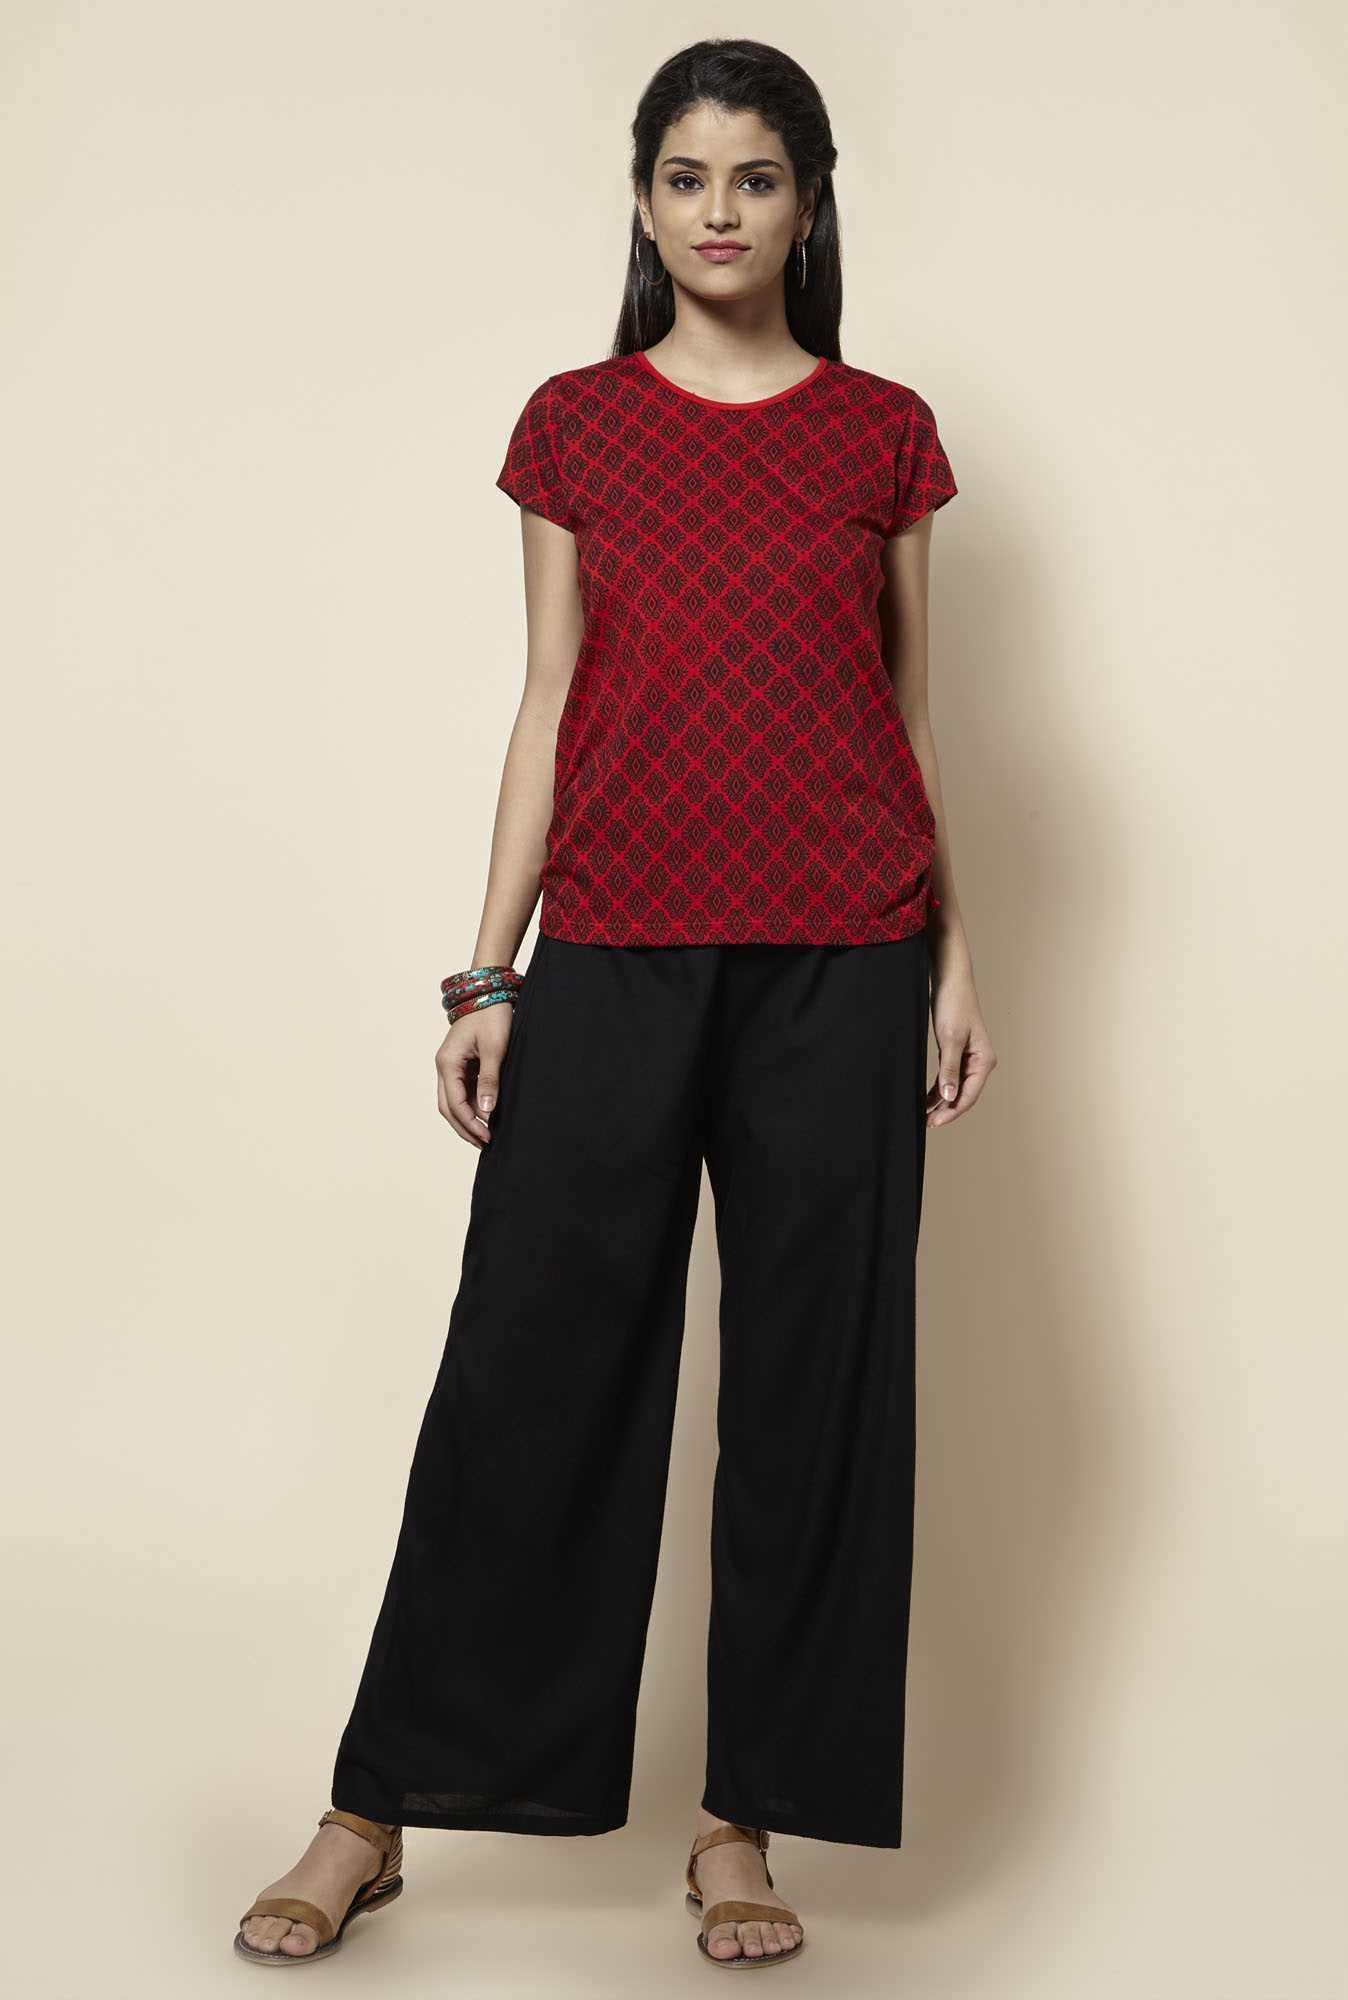 Zudio Red Printed Top